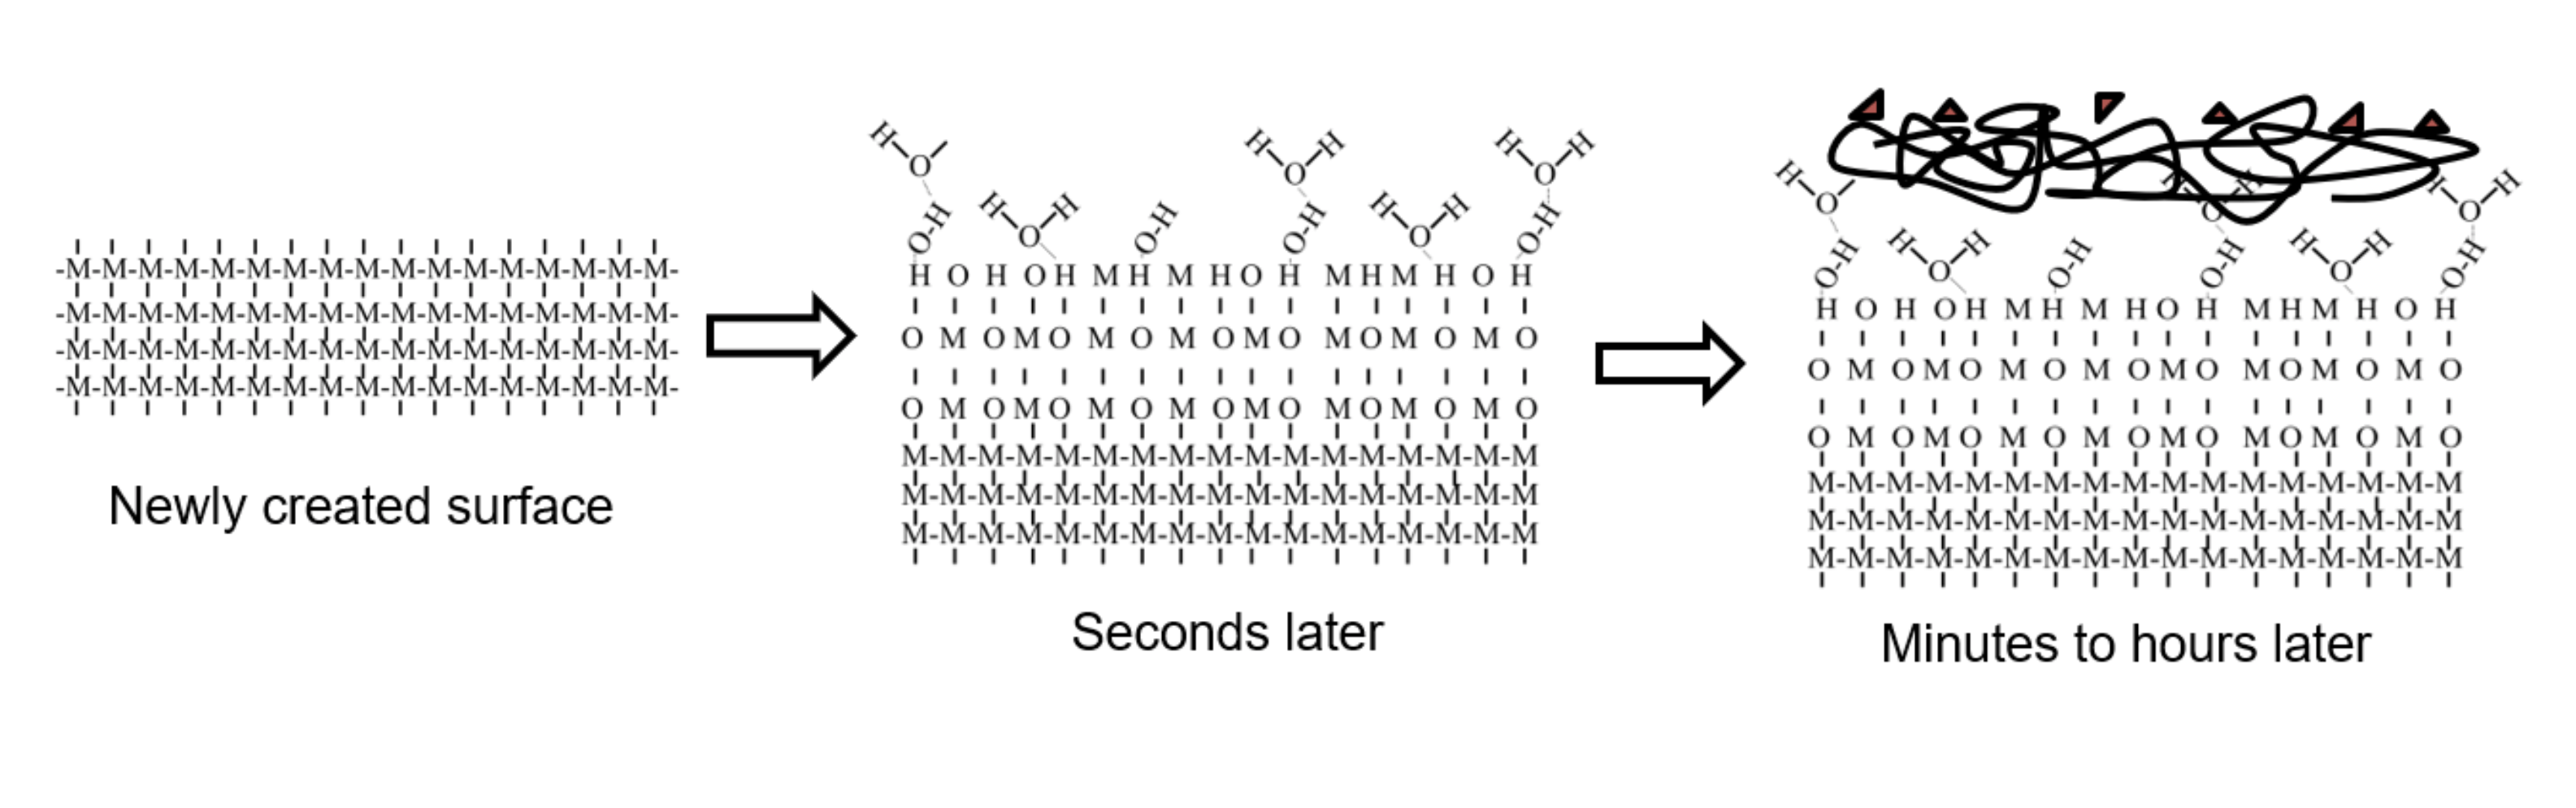 surface-aging-diagram